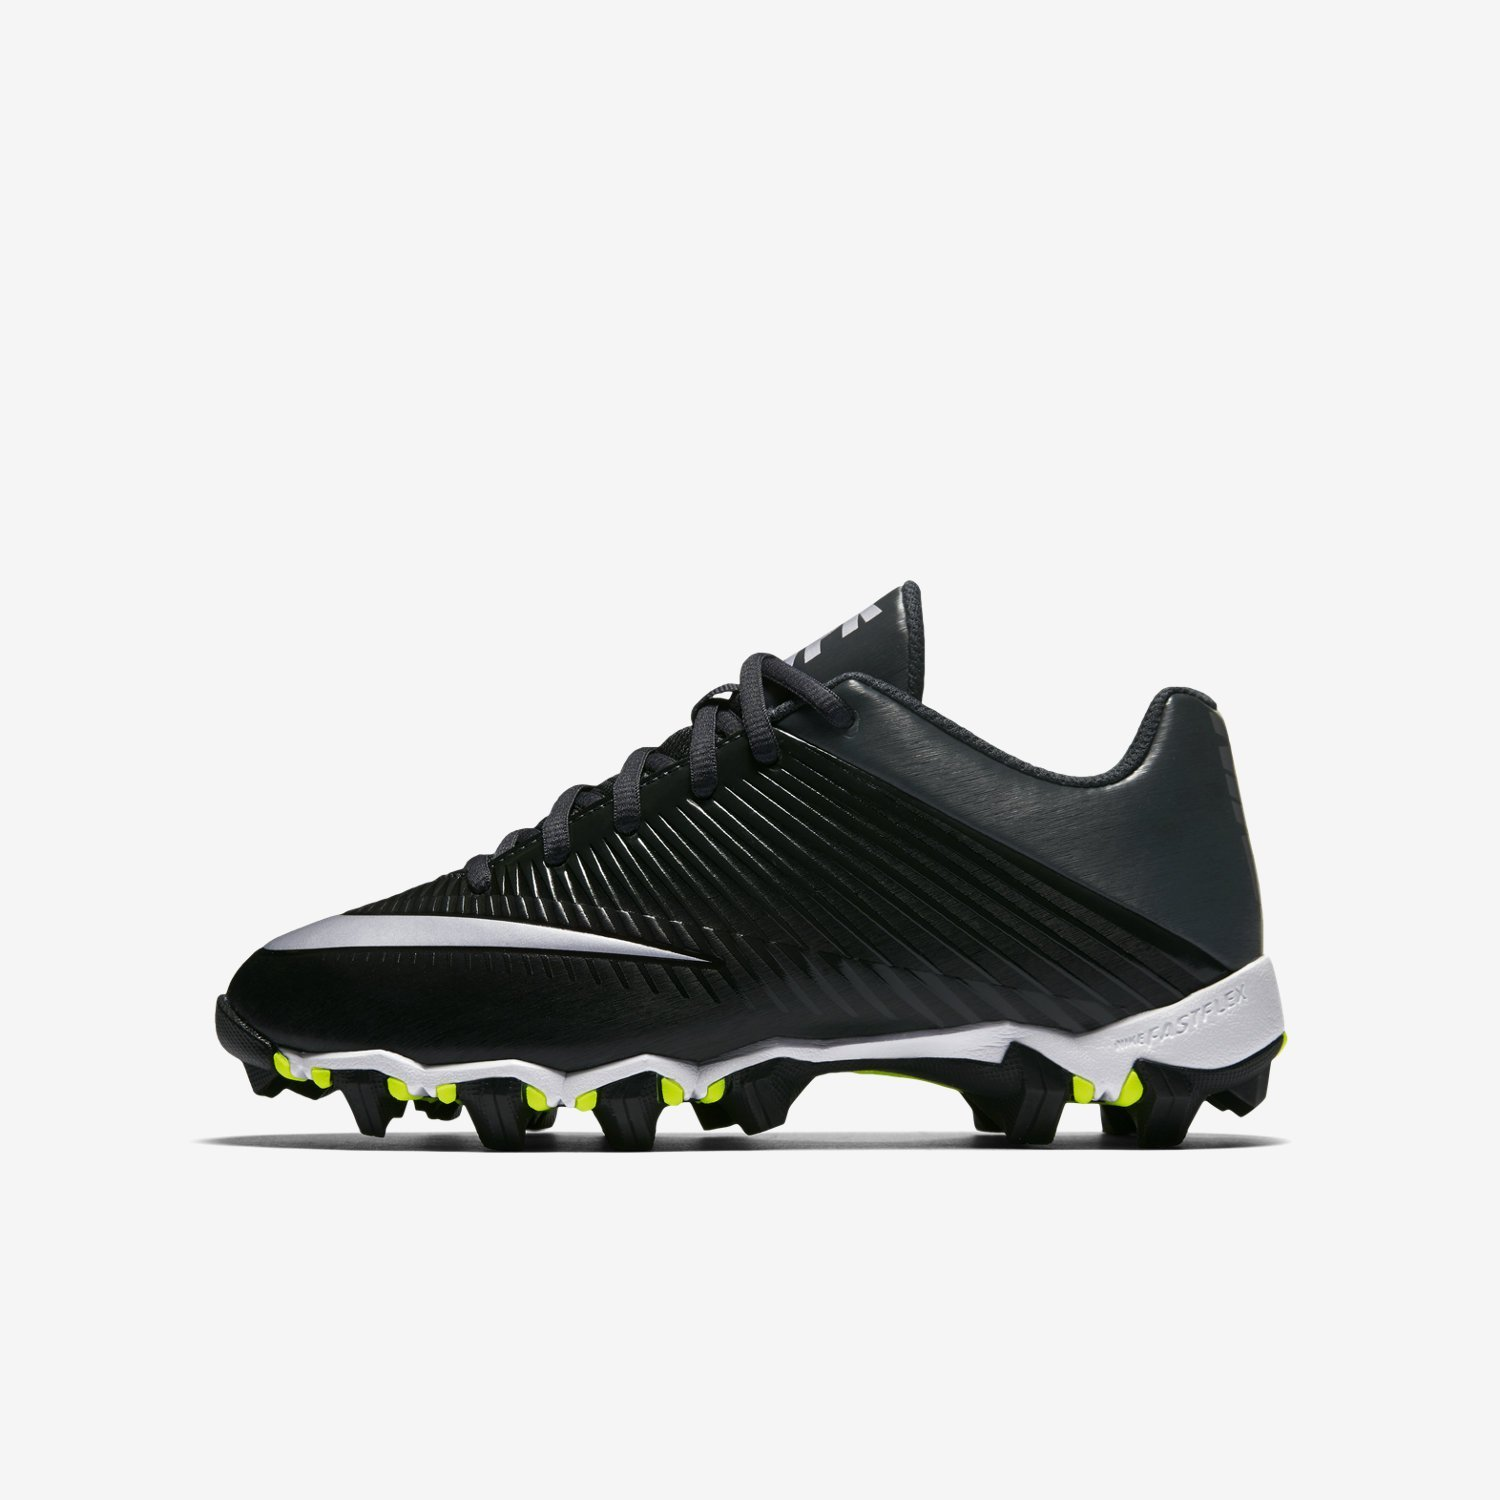 ddfd33df8 Buy Nike football cleats superbad shark youth in Cheap Price on ...